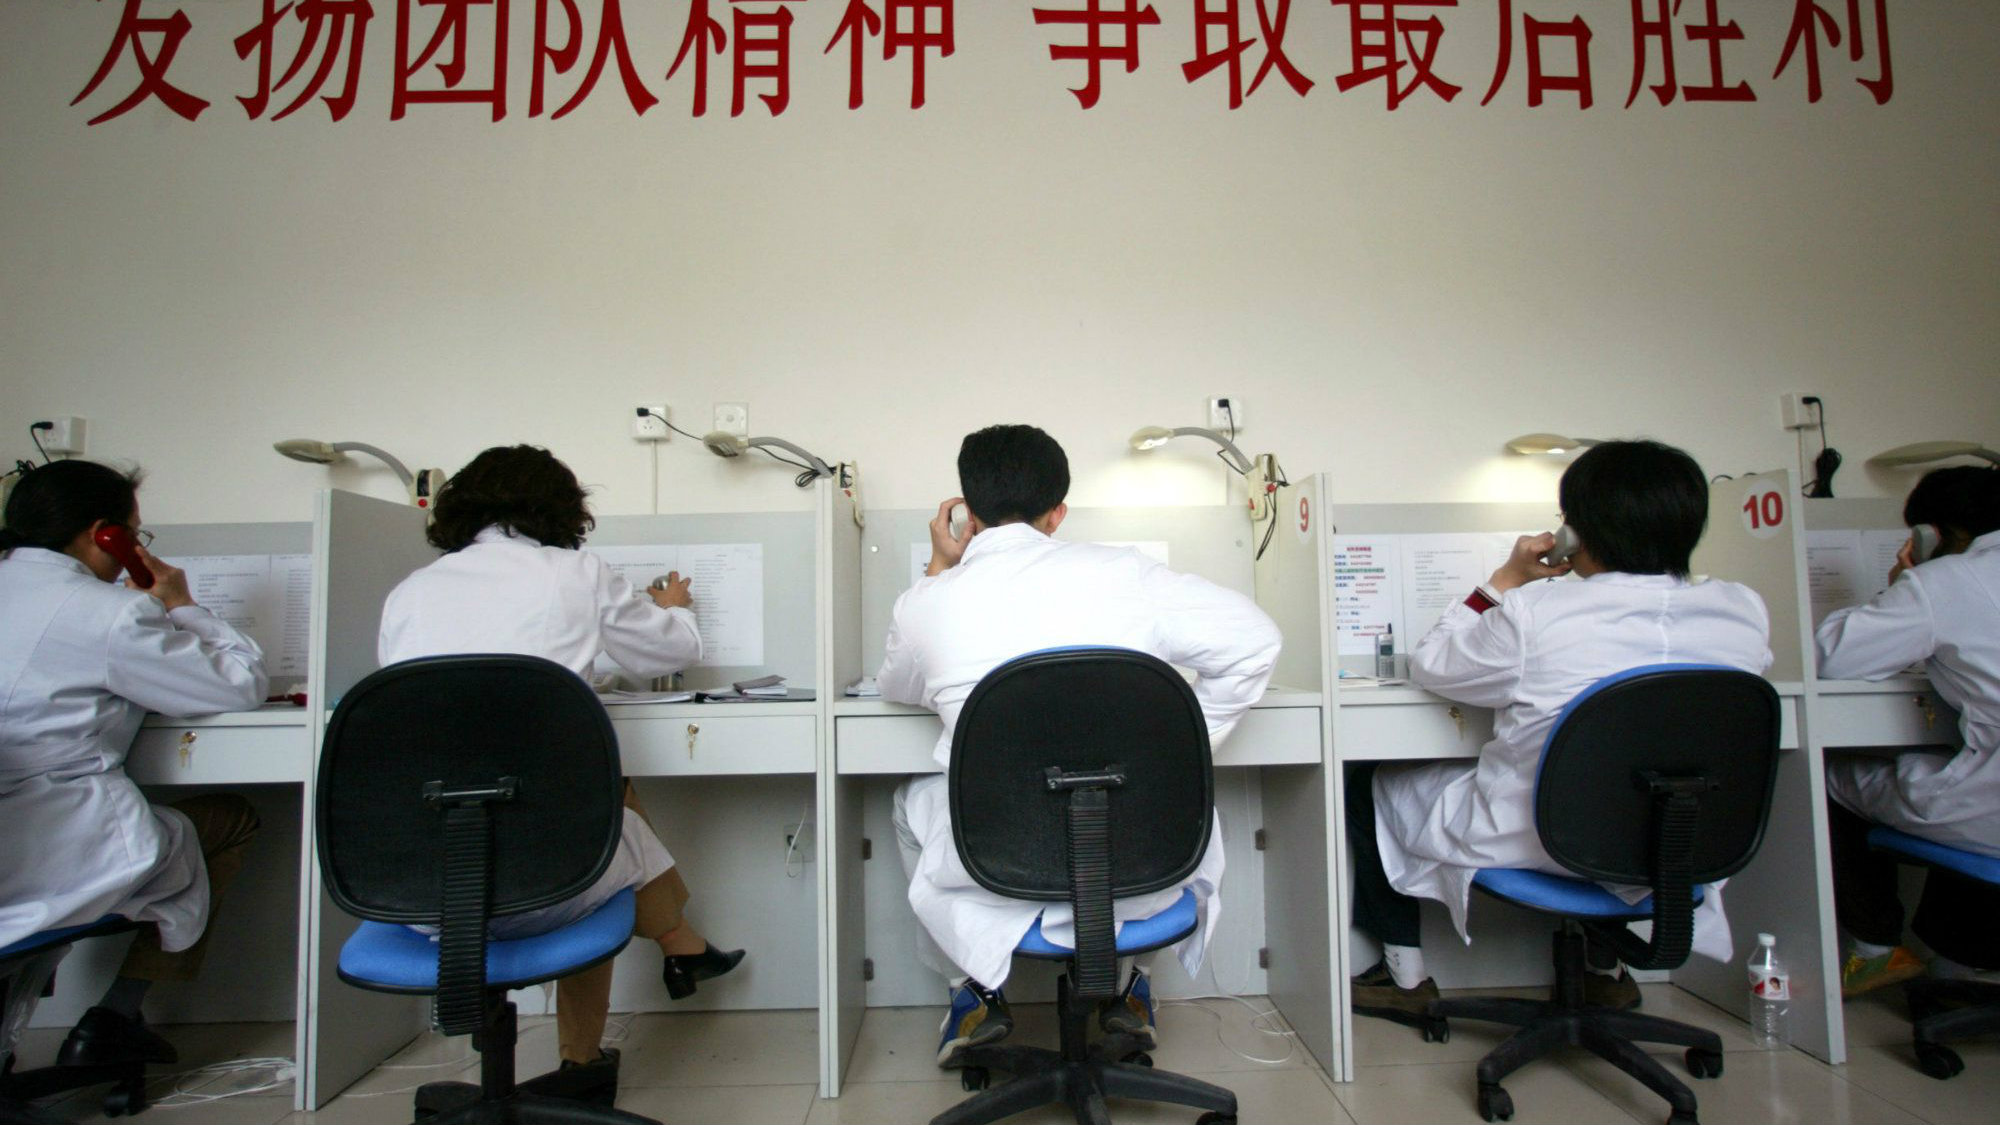 DATE IMPORTED:April 24, 2003CHINESE MEDICAL WORKERS ANSWER PHONE CALLS ABOUT THE SARS AT A SPECIAL